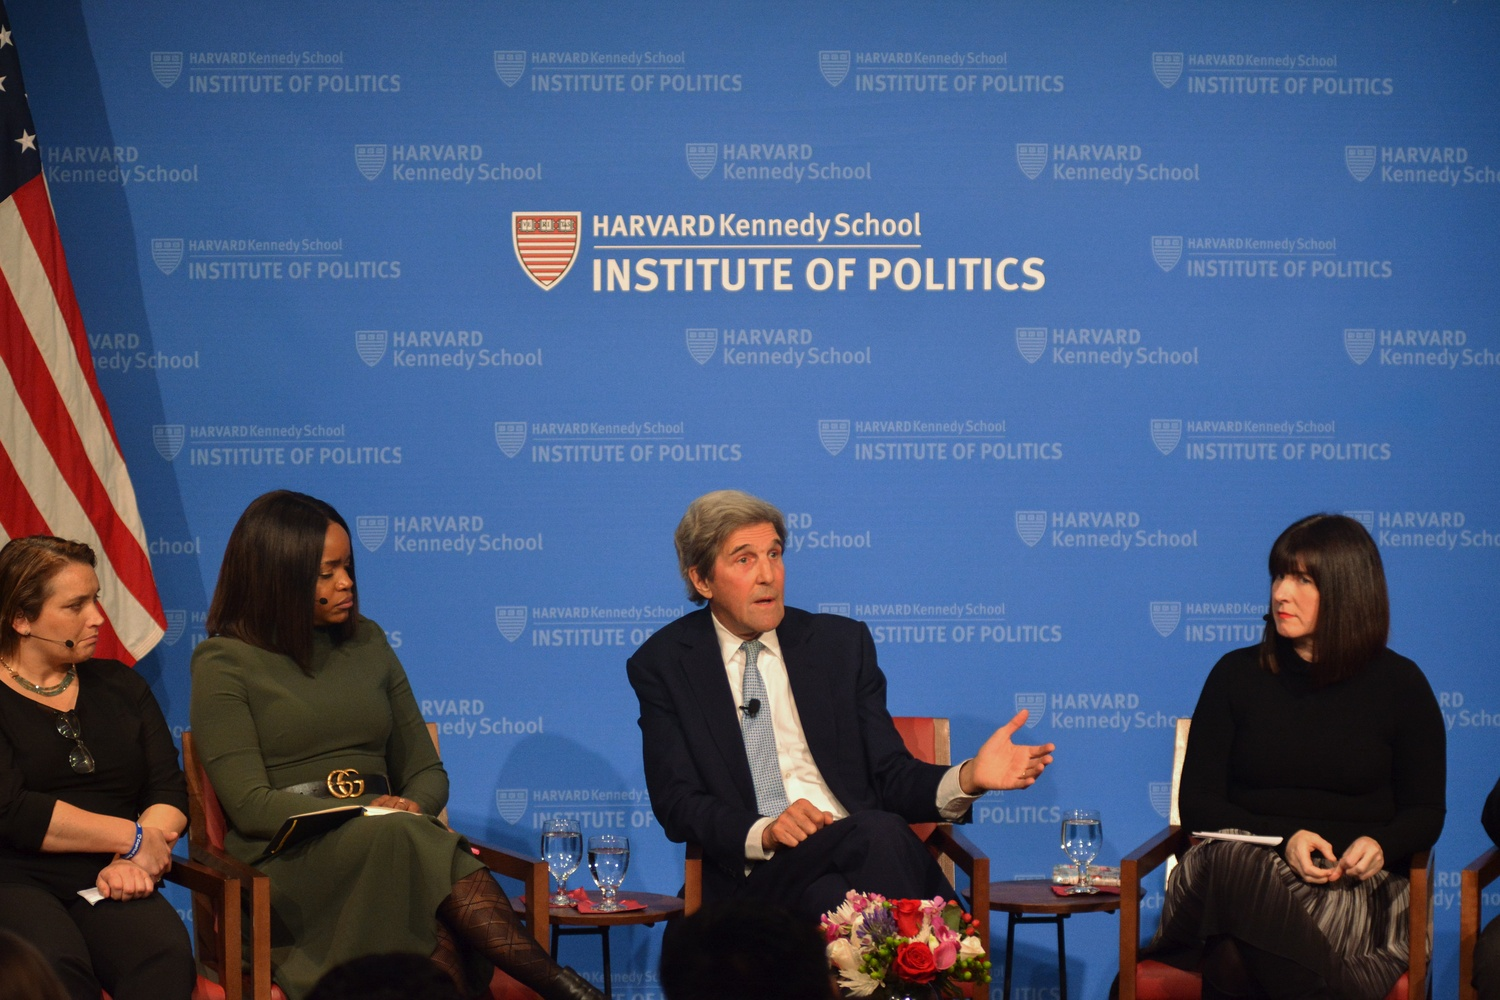 John Kerry at the IOP